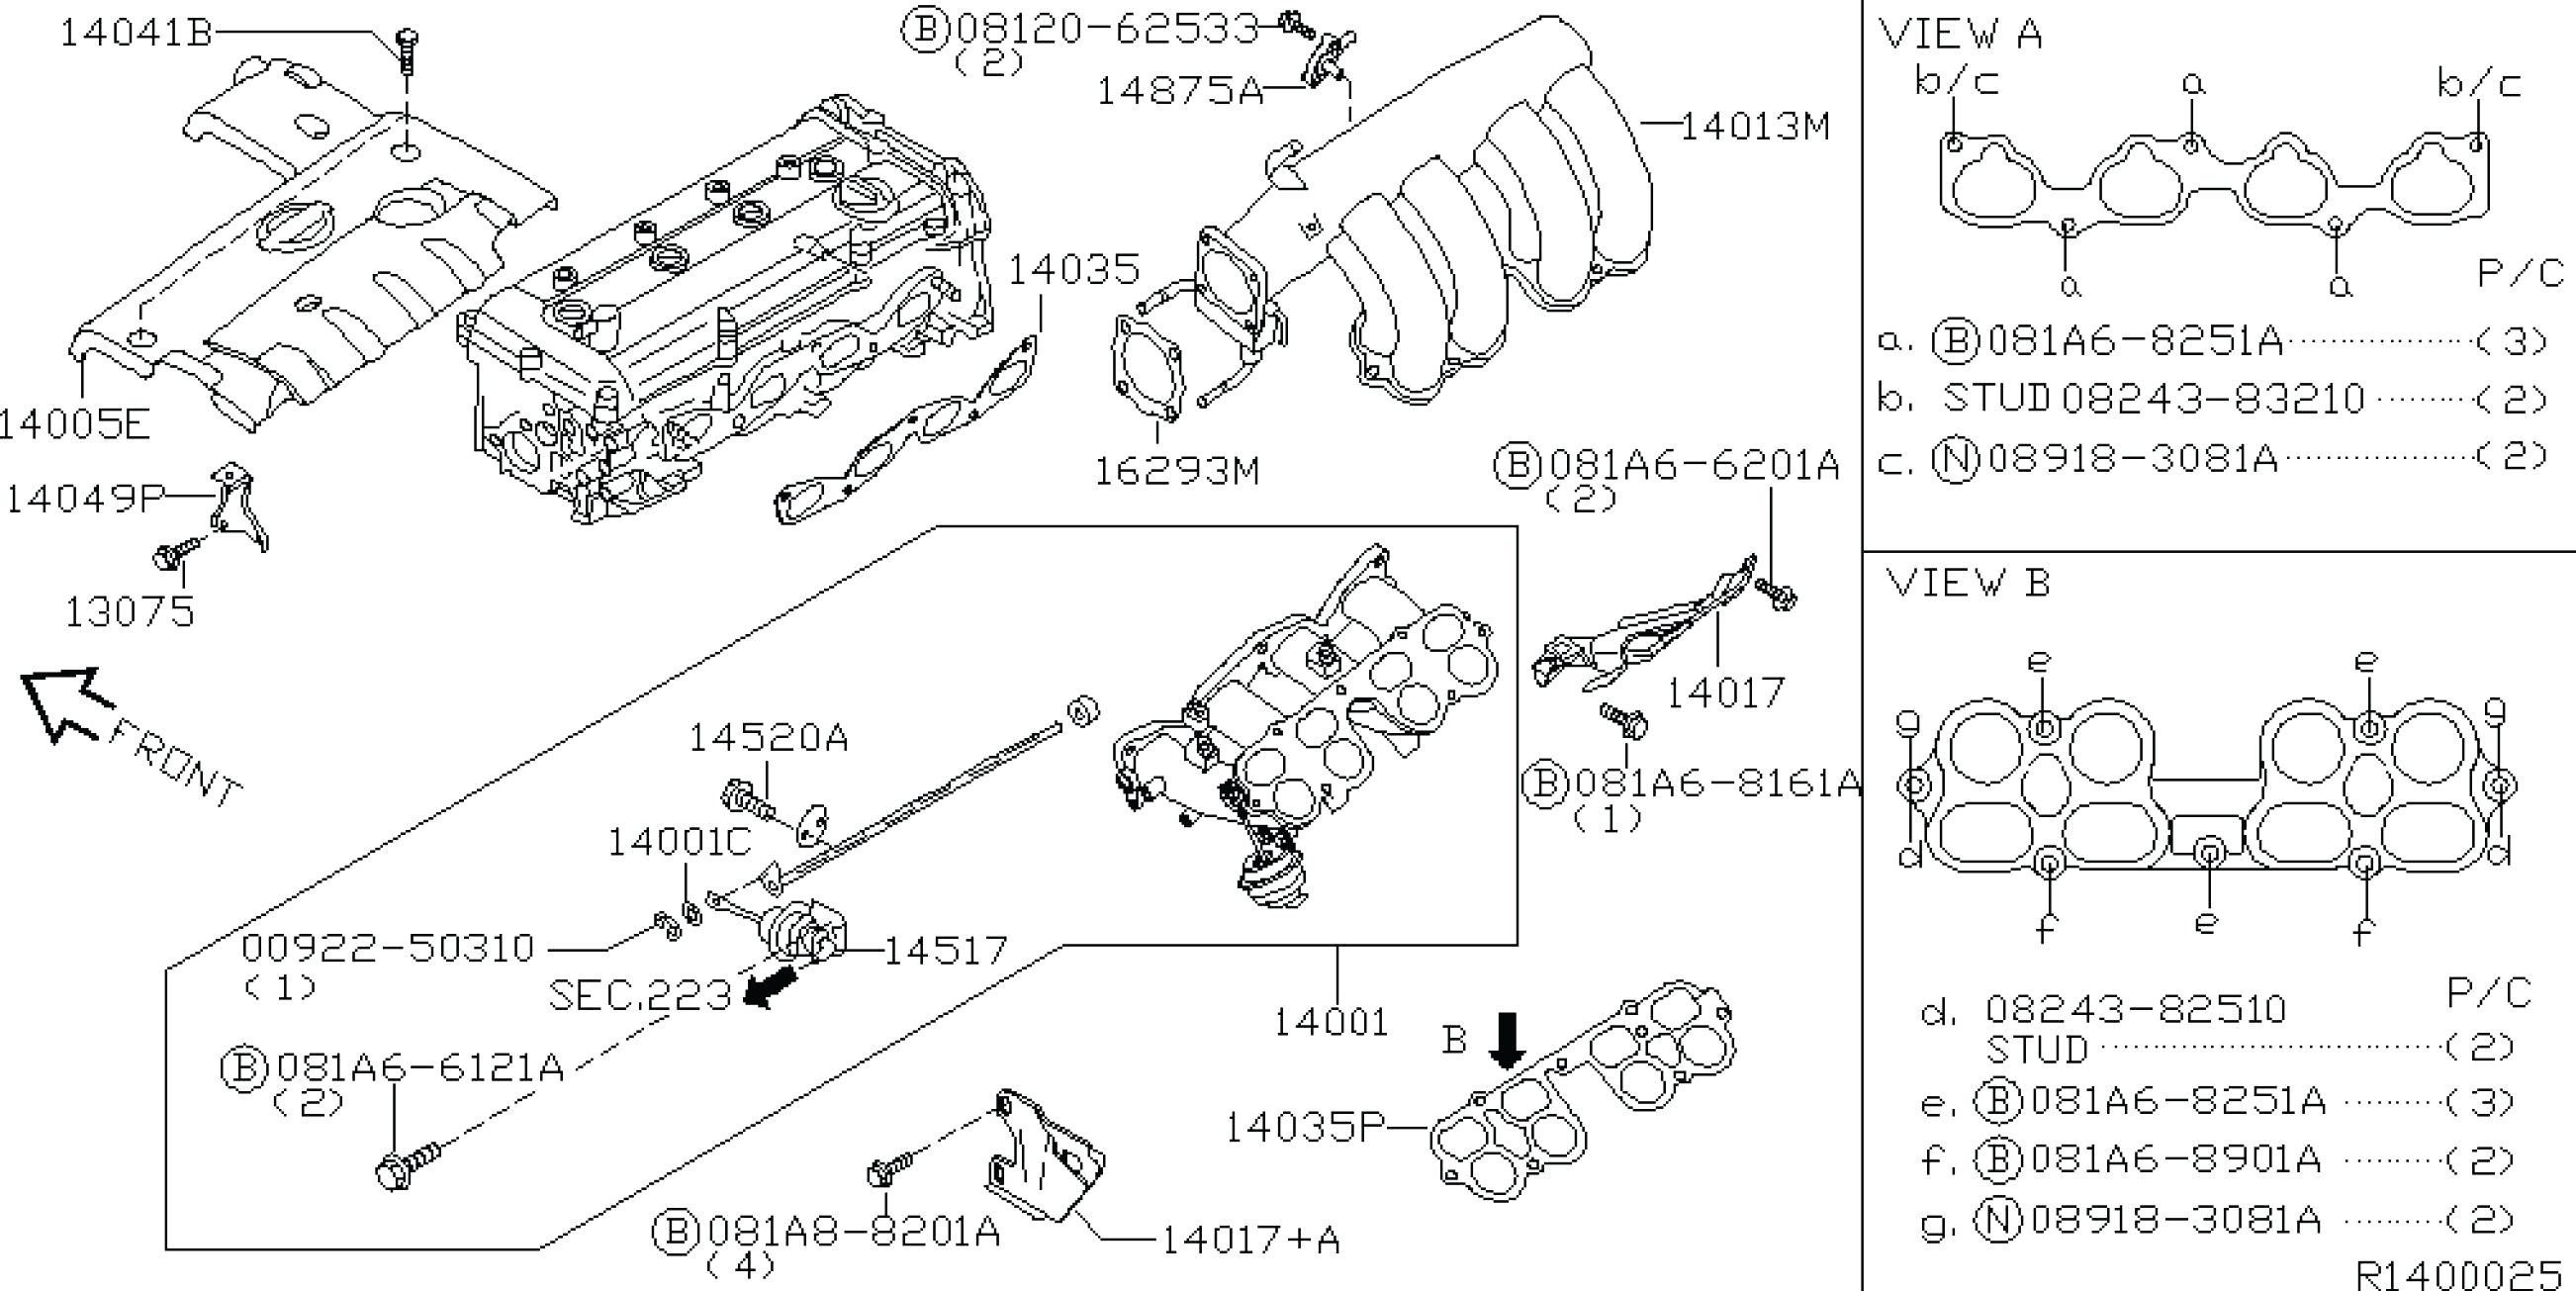 2008 Nissan Altima Engine Diagram Nissan Pathfinder Parts Elegant 2008  Nissan Altima Engine Diagram Of 2008